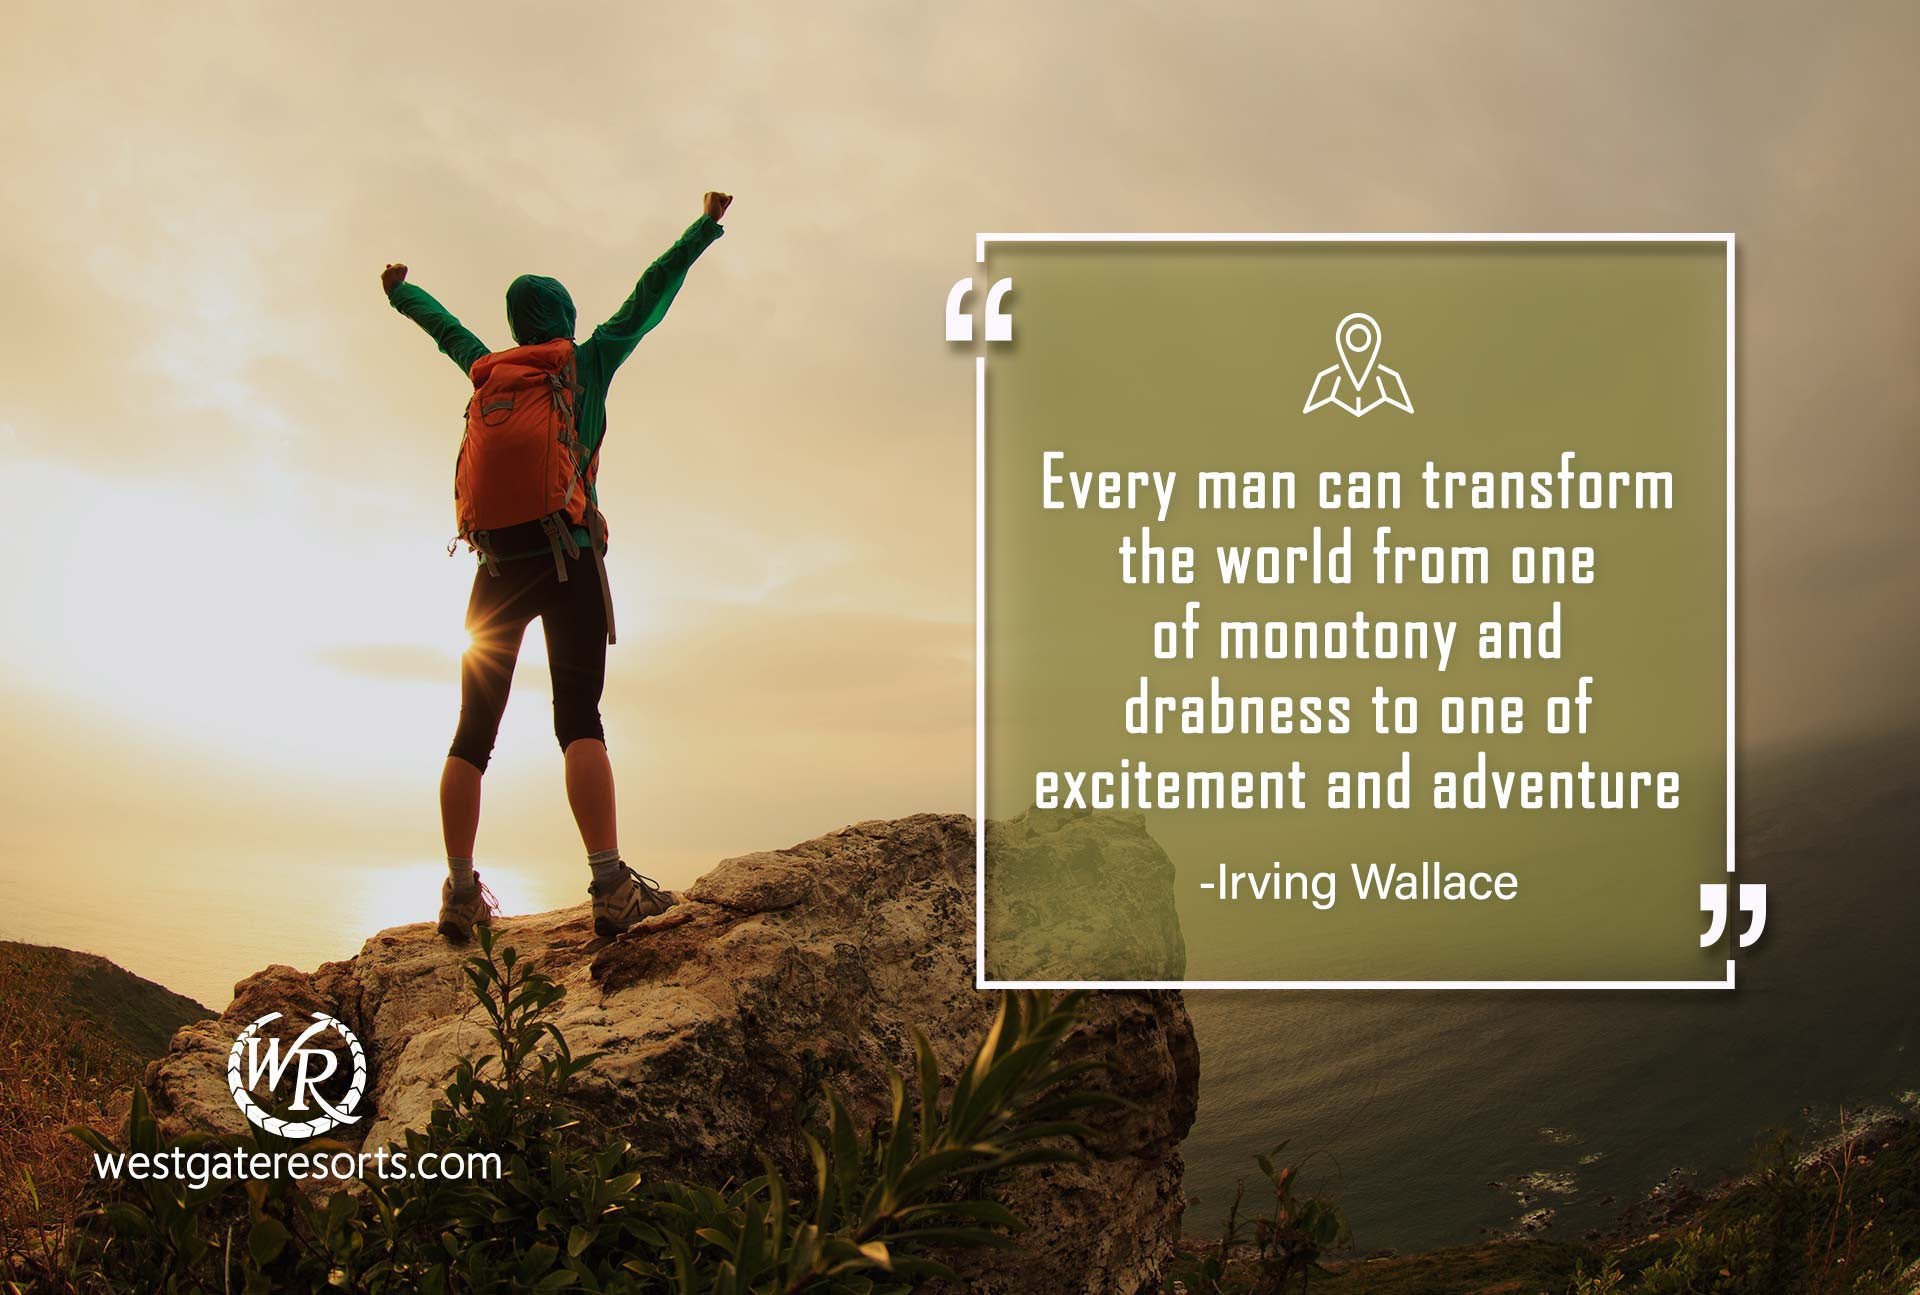 Every man can transform the world from one of monotony and drabness to one of excitement and adventure | Irving Wallace | Travel Motivational Quotes